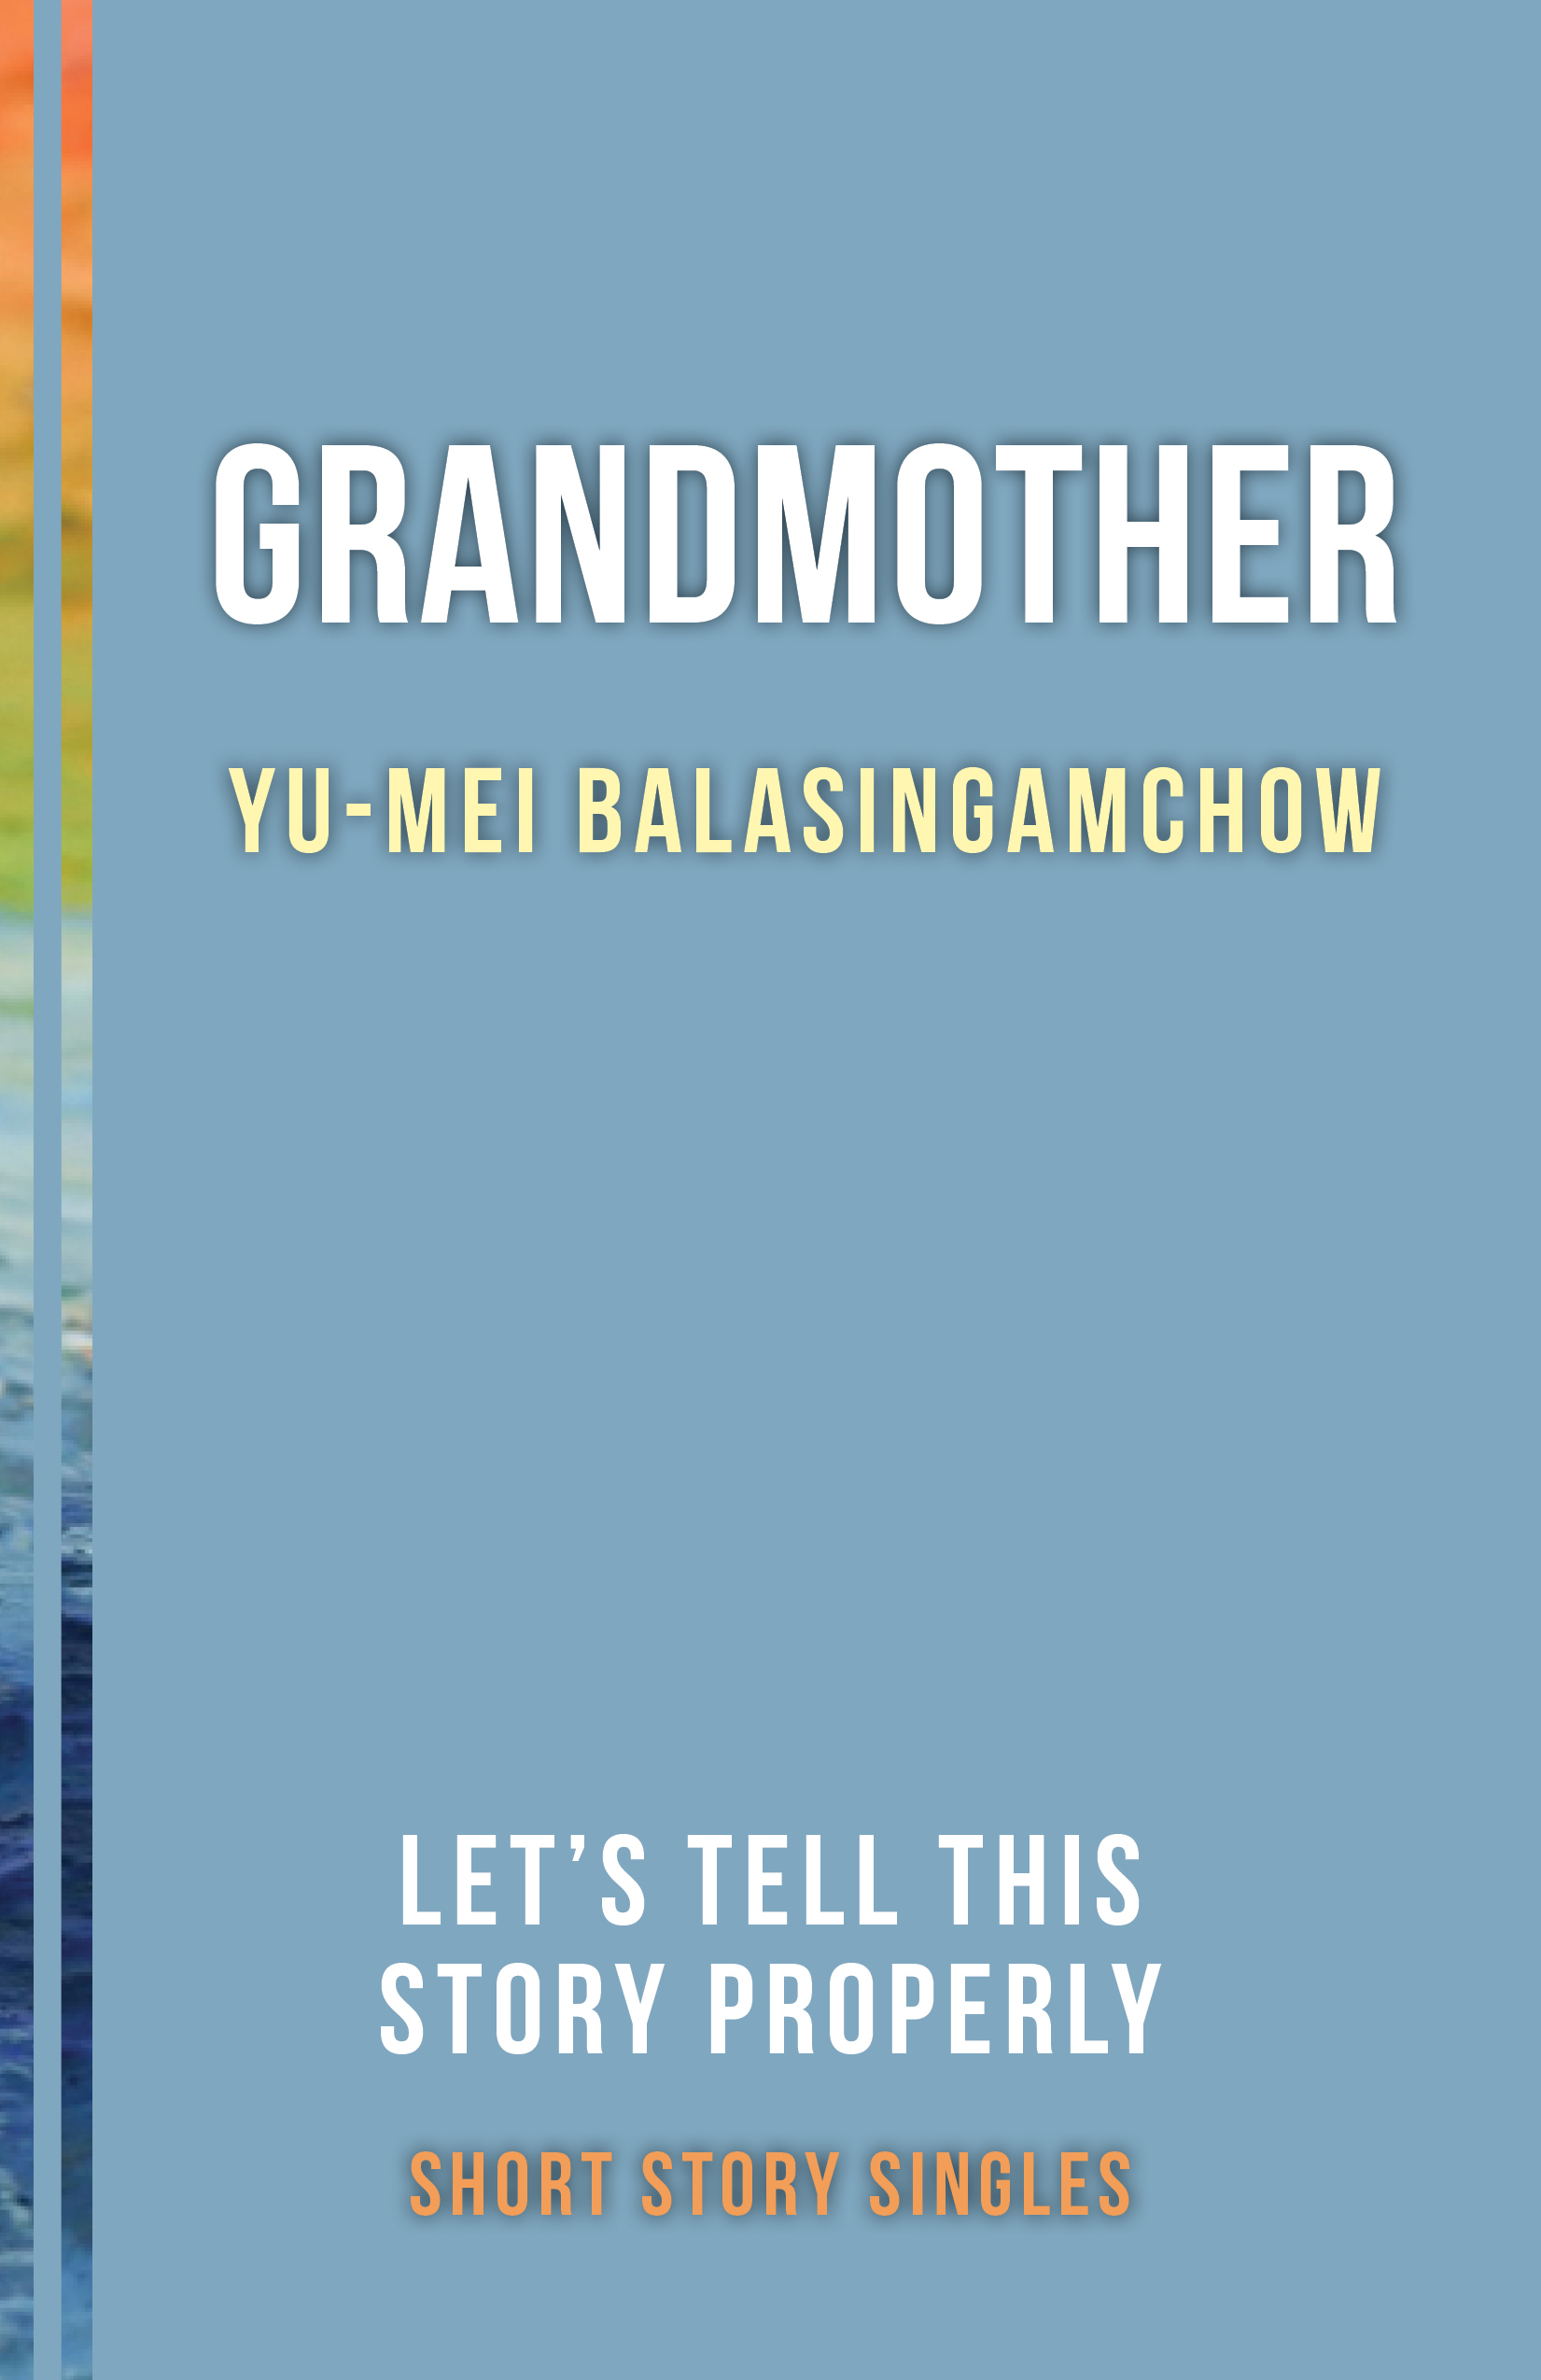 Grandmother: Let's Tell This Story Properly Short Story Singles  by  Yu-Mei Balasingamchow